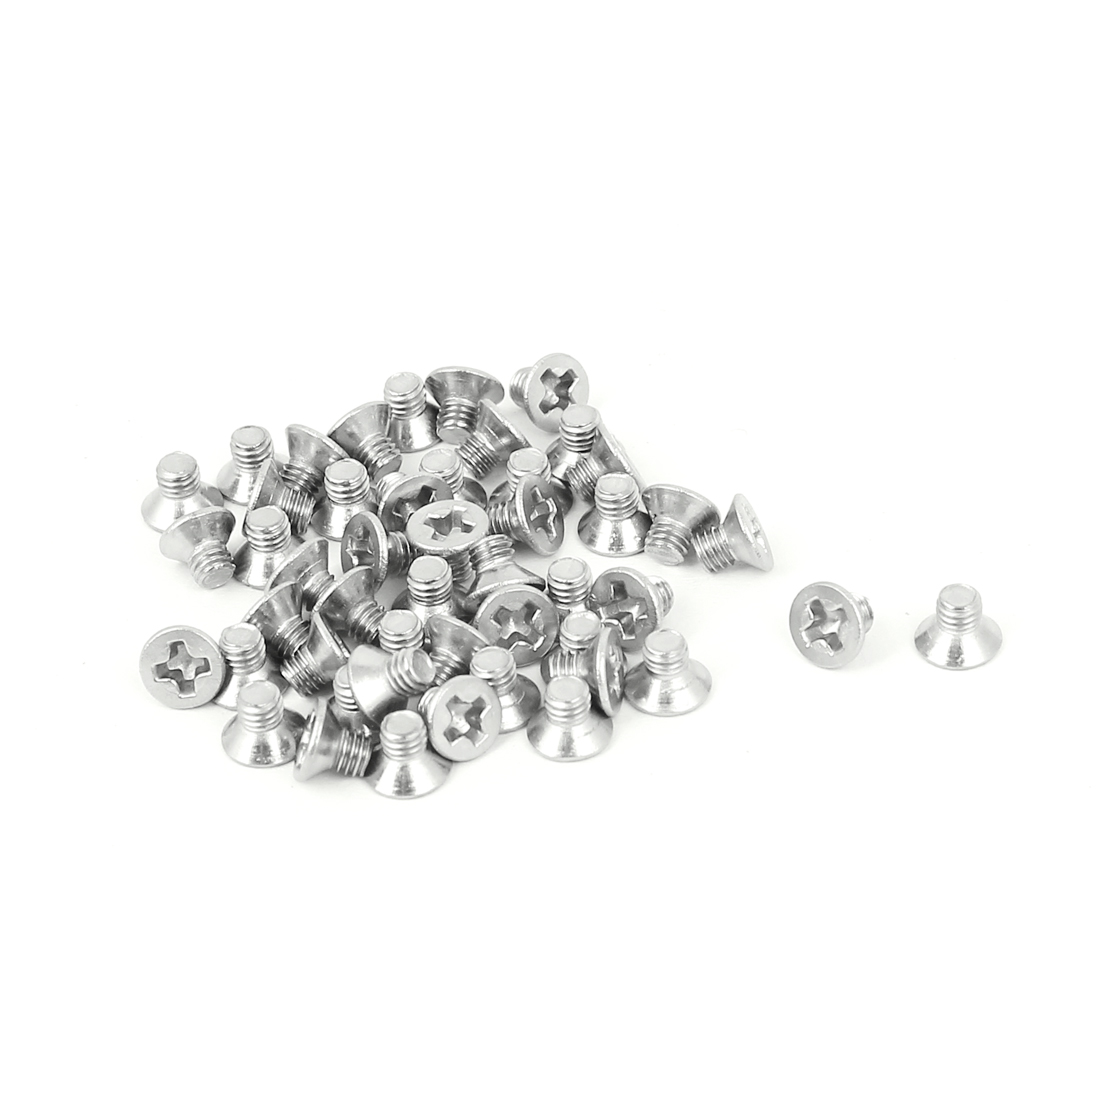 M3x4mm Stainless Steel Phillips Flat Countersunk Head Screws 50pcs